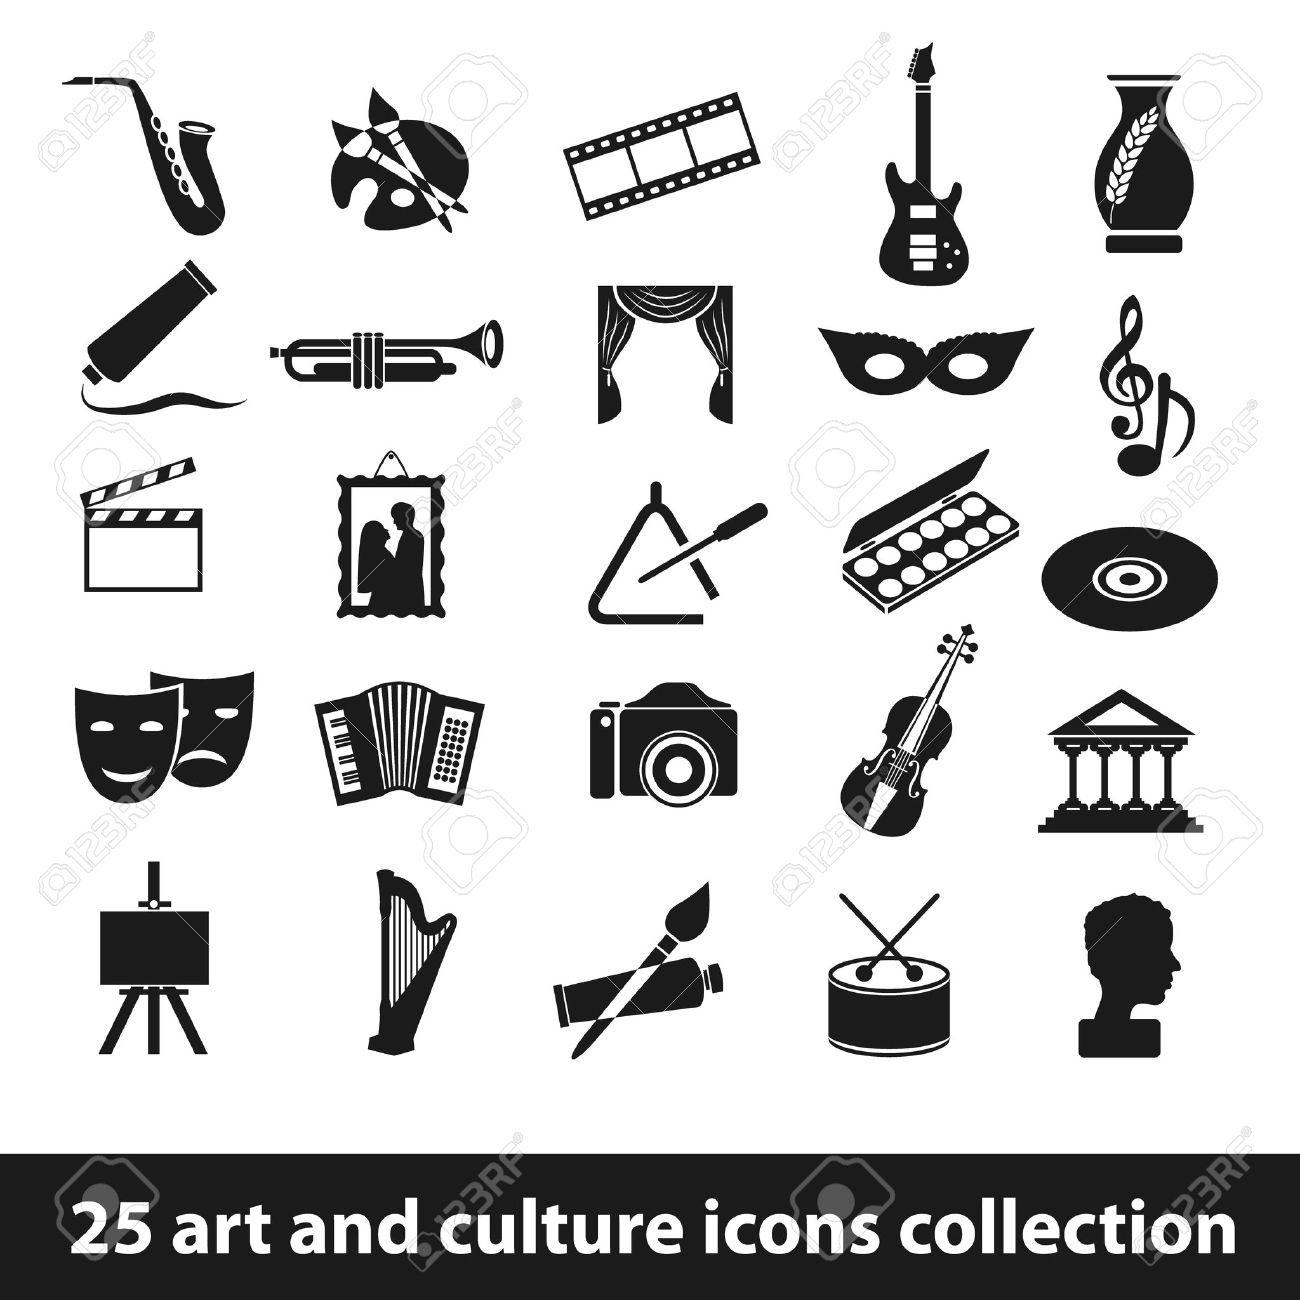 25 art and culture icon collection - 26708146